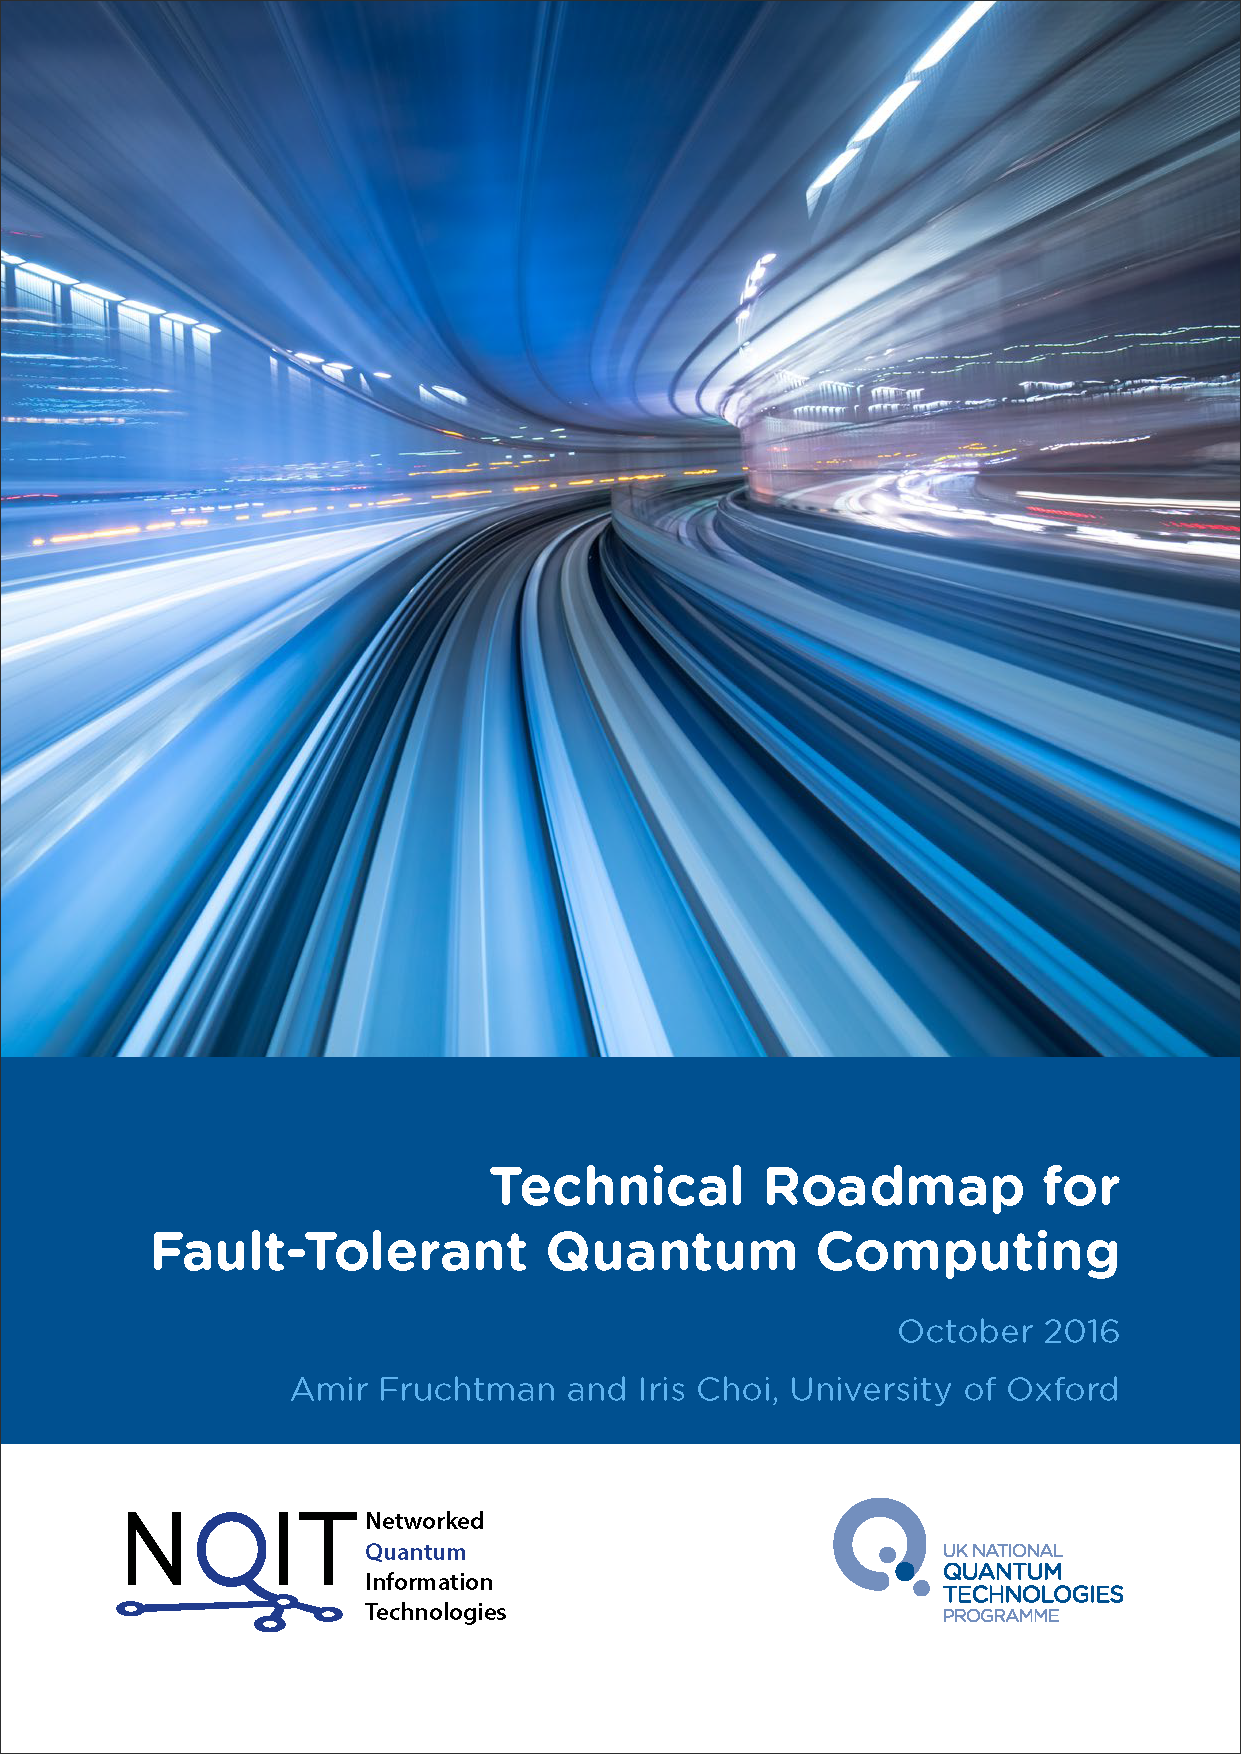 NQIT Technical Roadmap